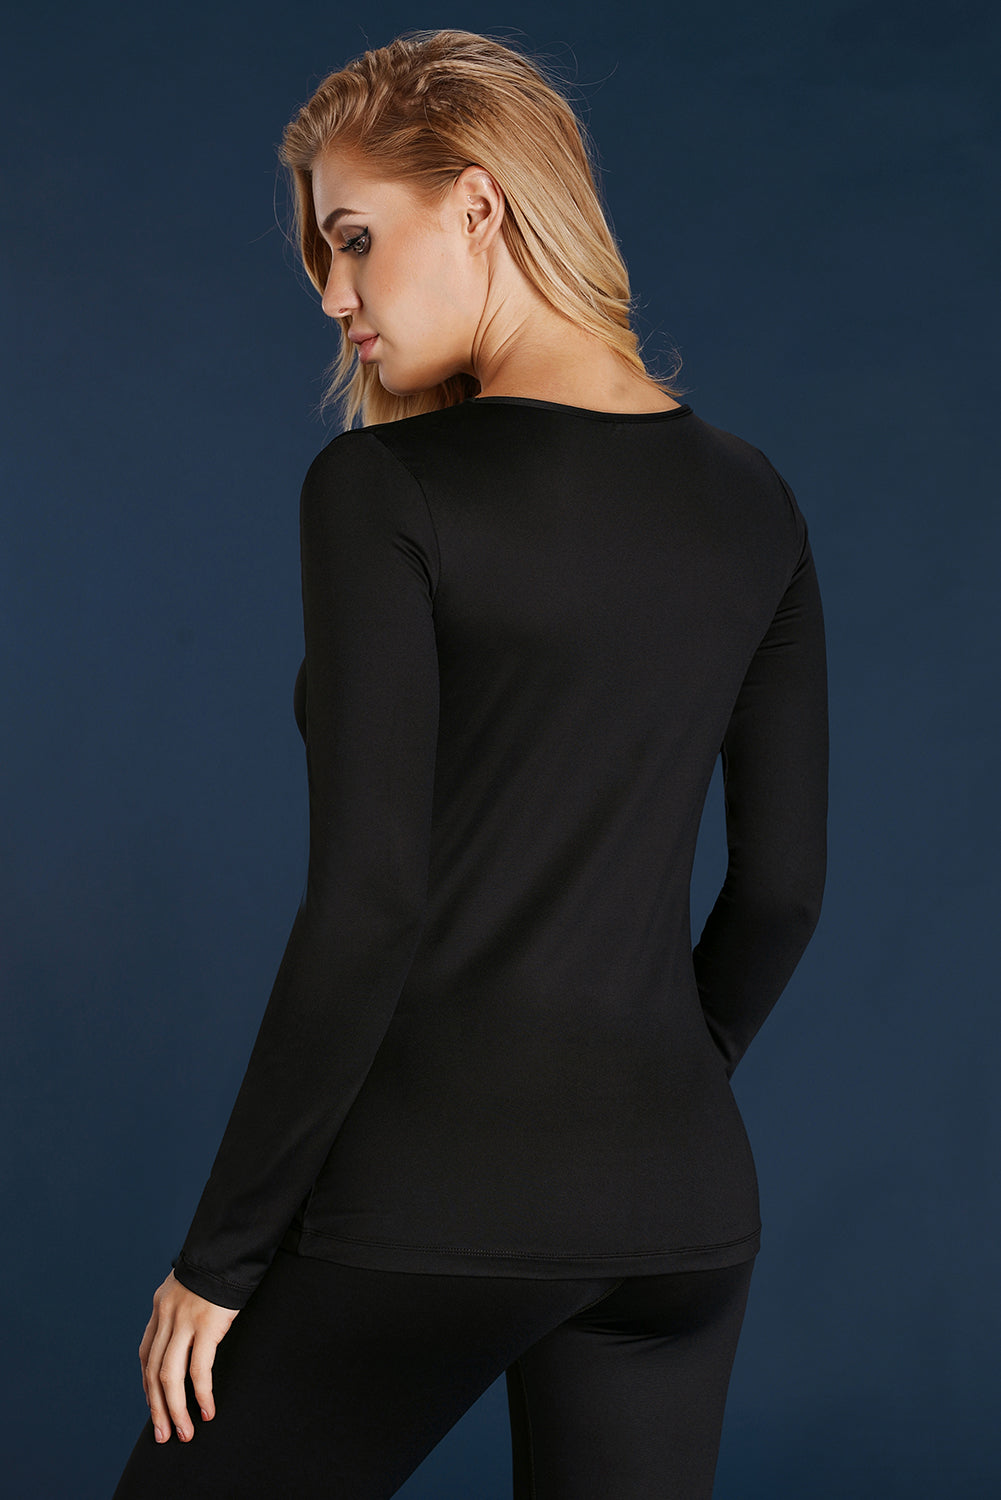 Black Basic Long Sleeves Round Crew Neck Yoga Top